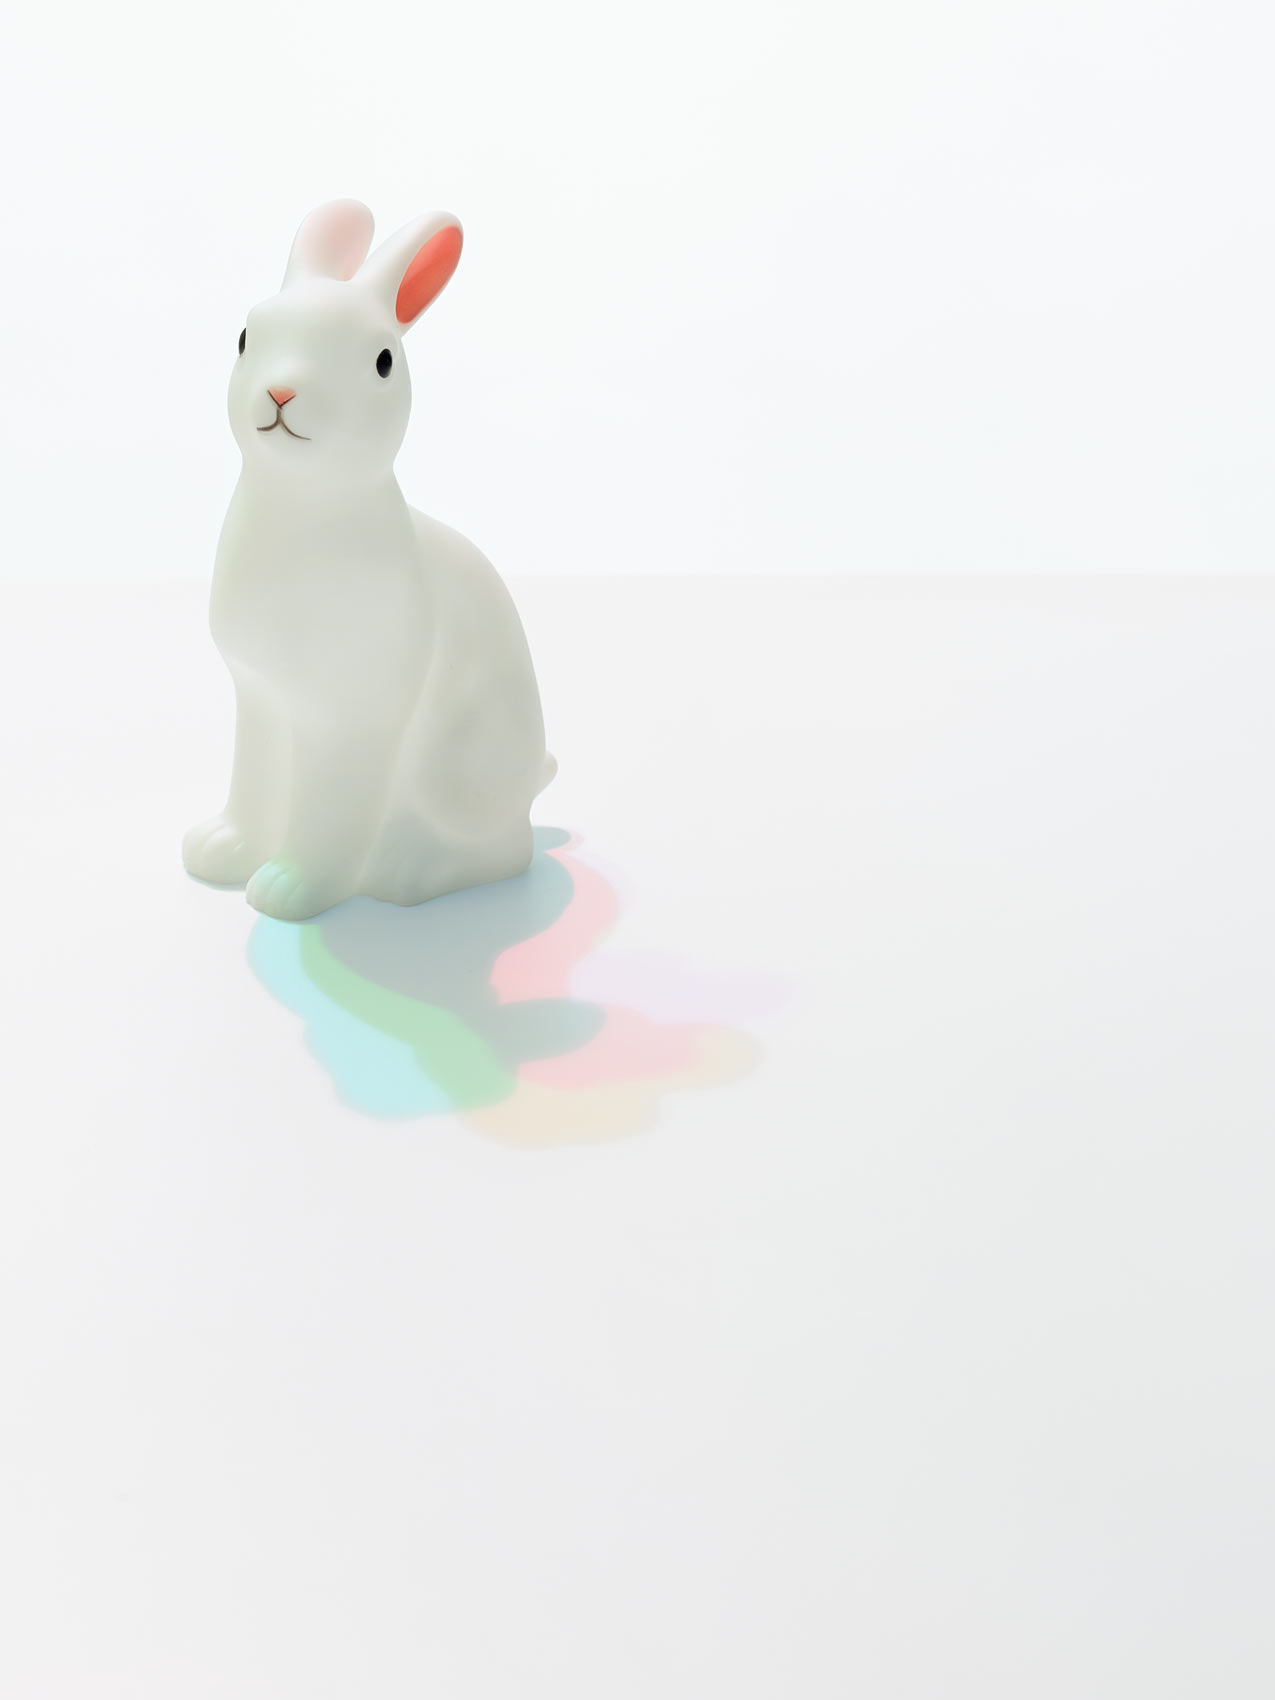 19-studio_rabbit-18497